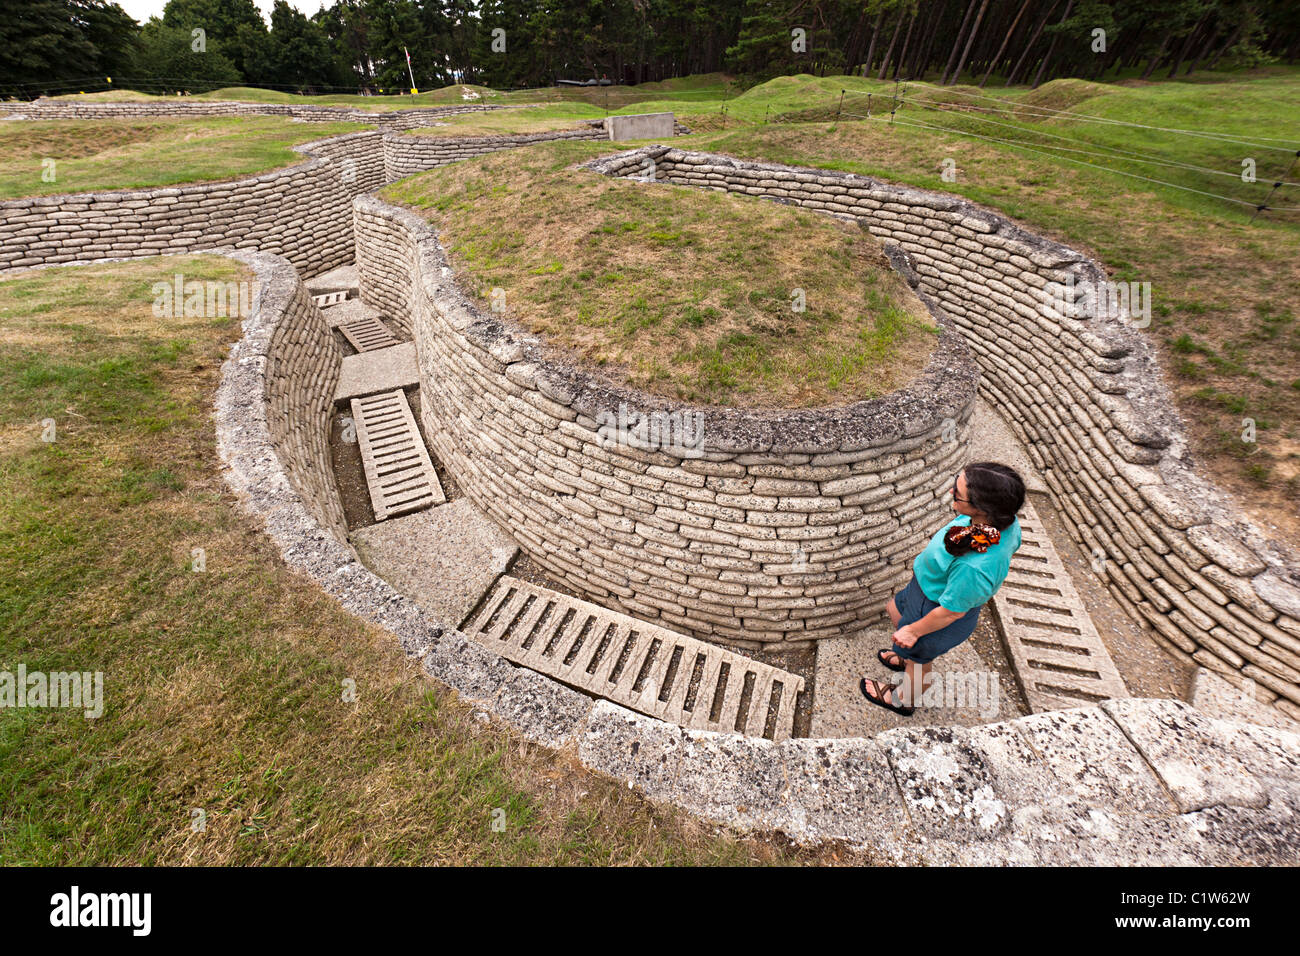 First World War trenches preserved at Vimy Ridge France - Stock Image